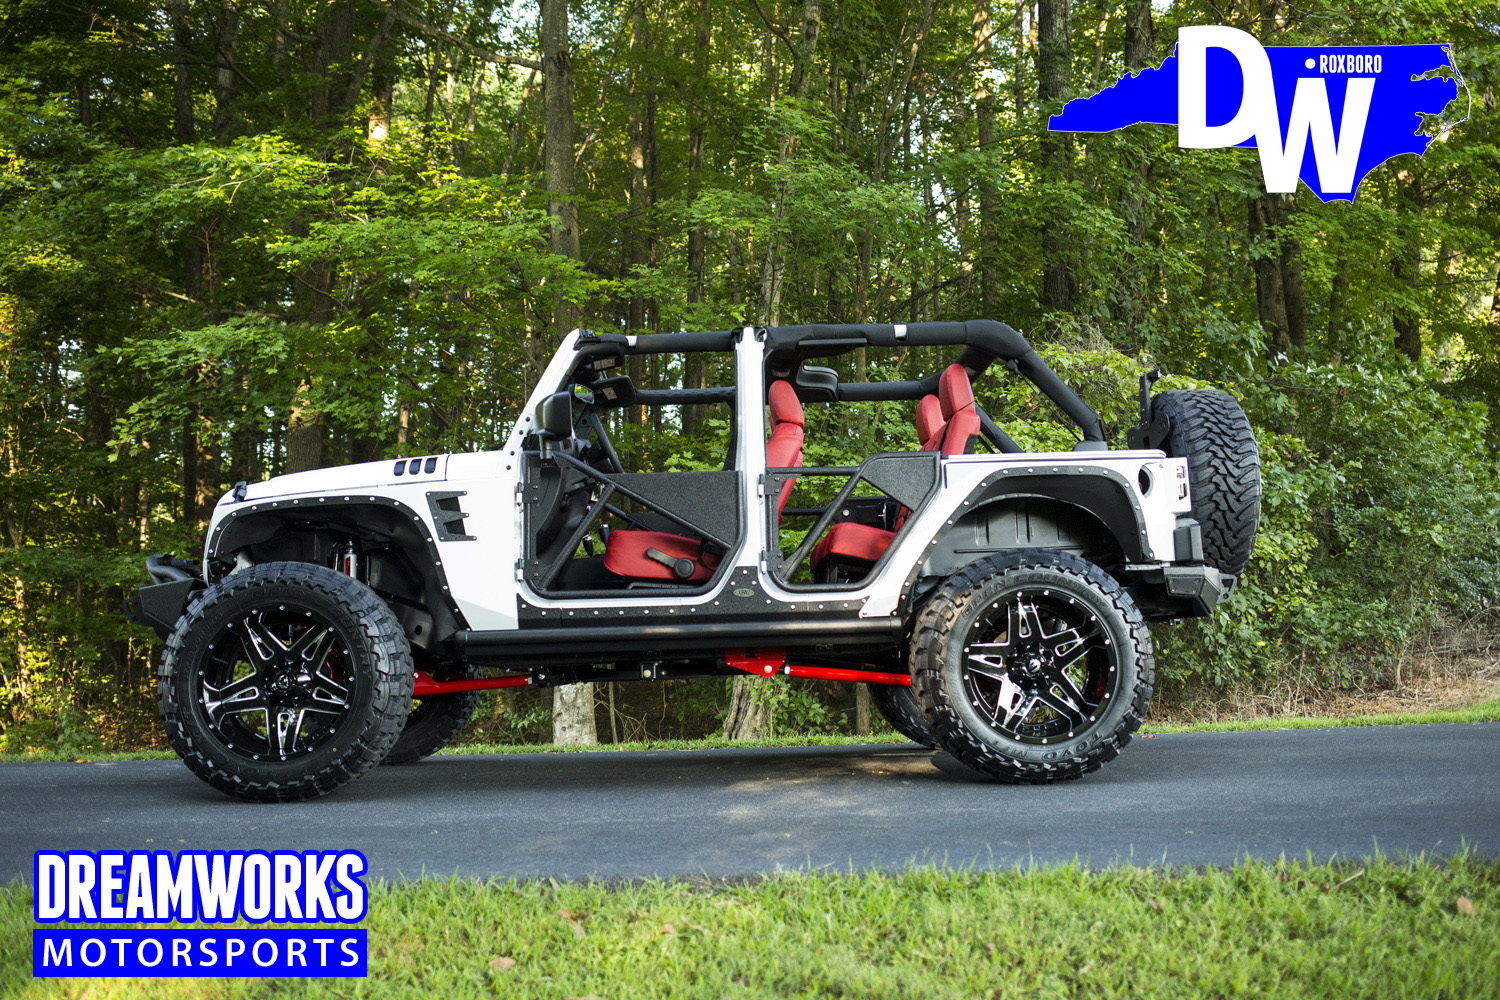 Gerald-Wallas-White-Jeep-by-Dreamworksmotorsports-7.jpg